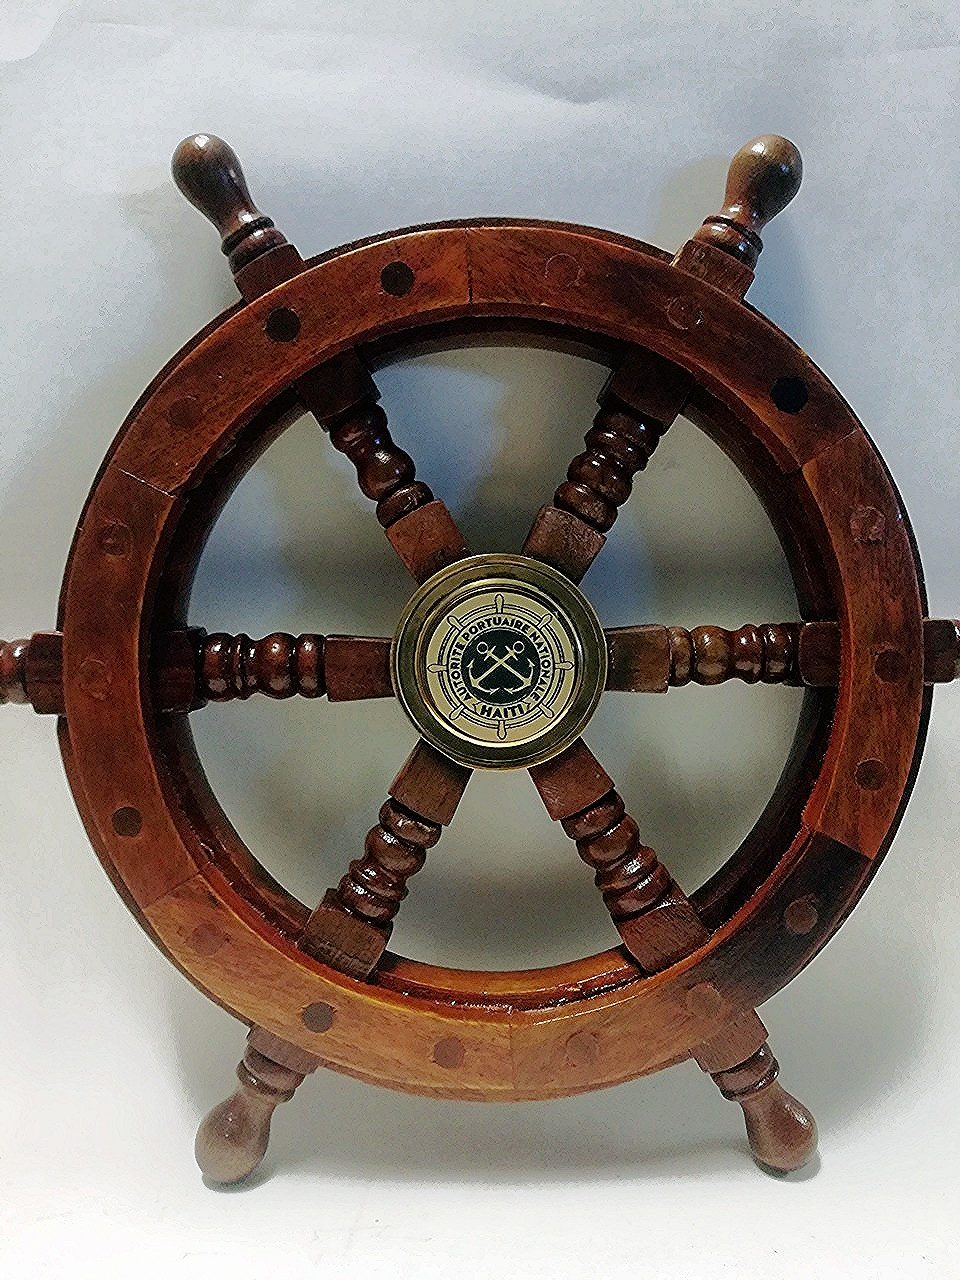 Personalized Wooden Ship Wheel Coat Hanger -  12""